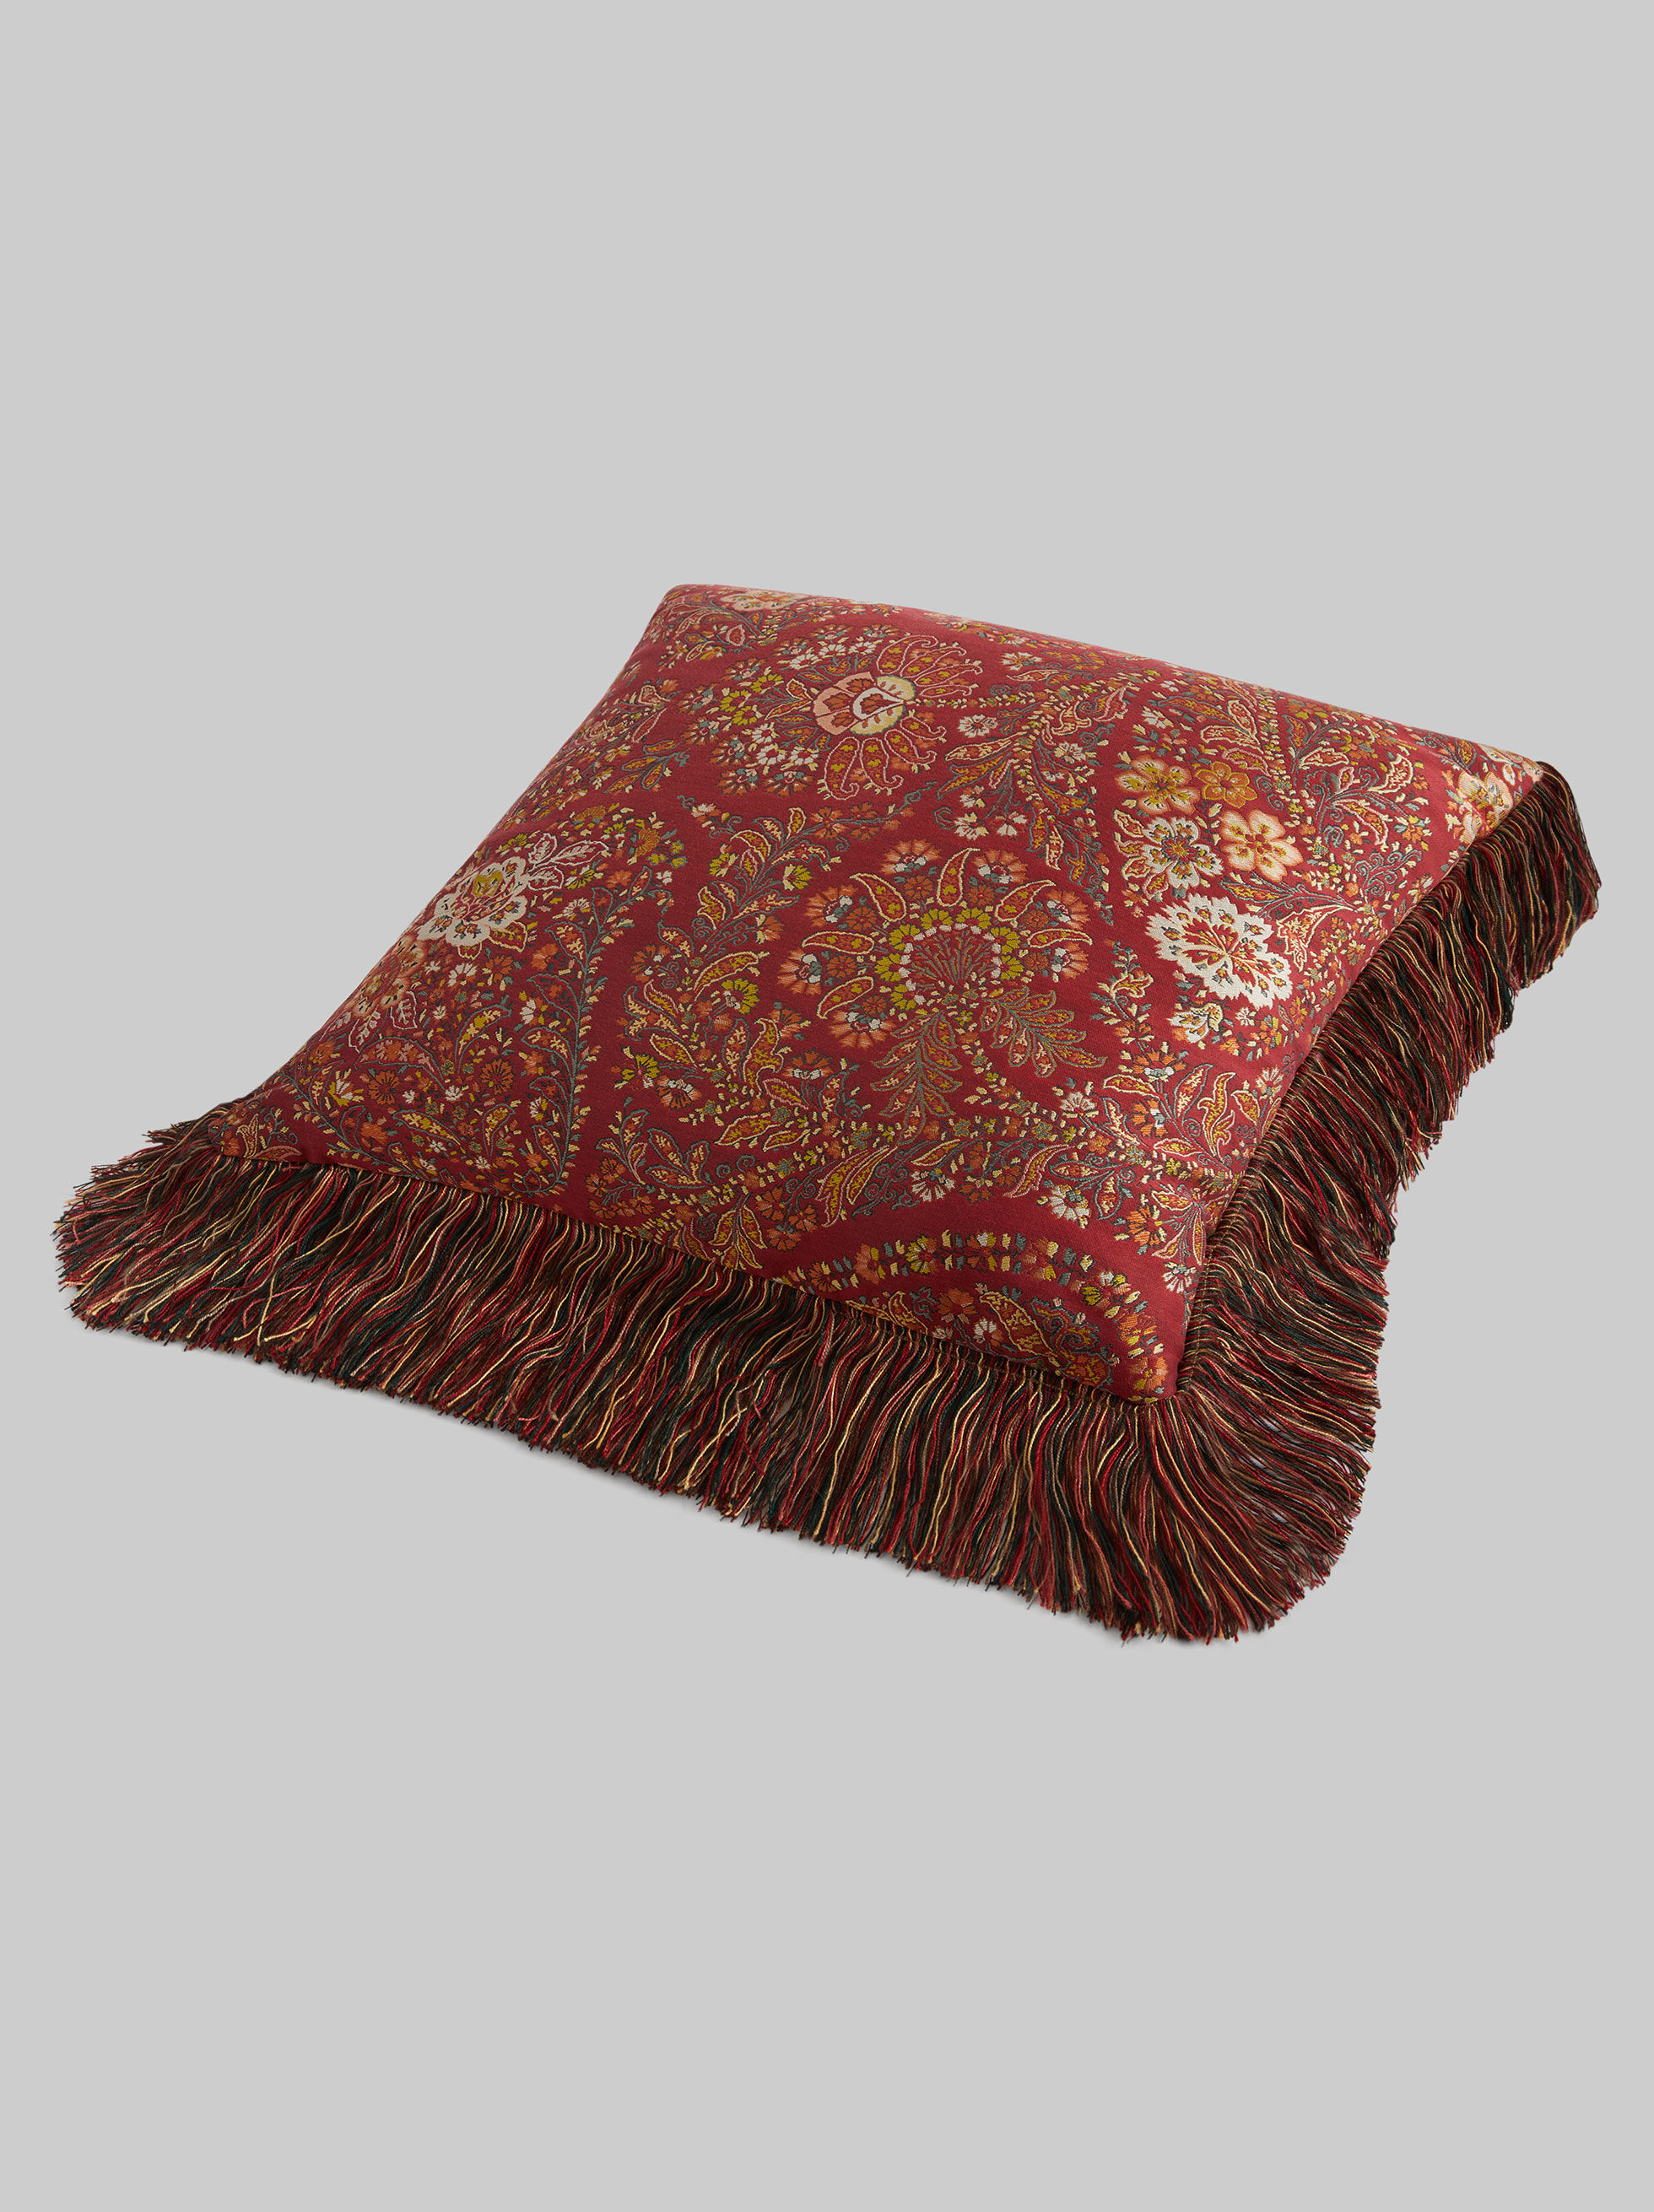 JACQUARD THROW PILLOW WITH FRINGE DETAILS